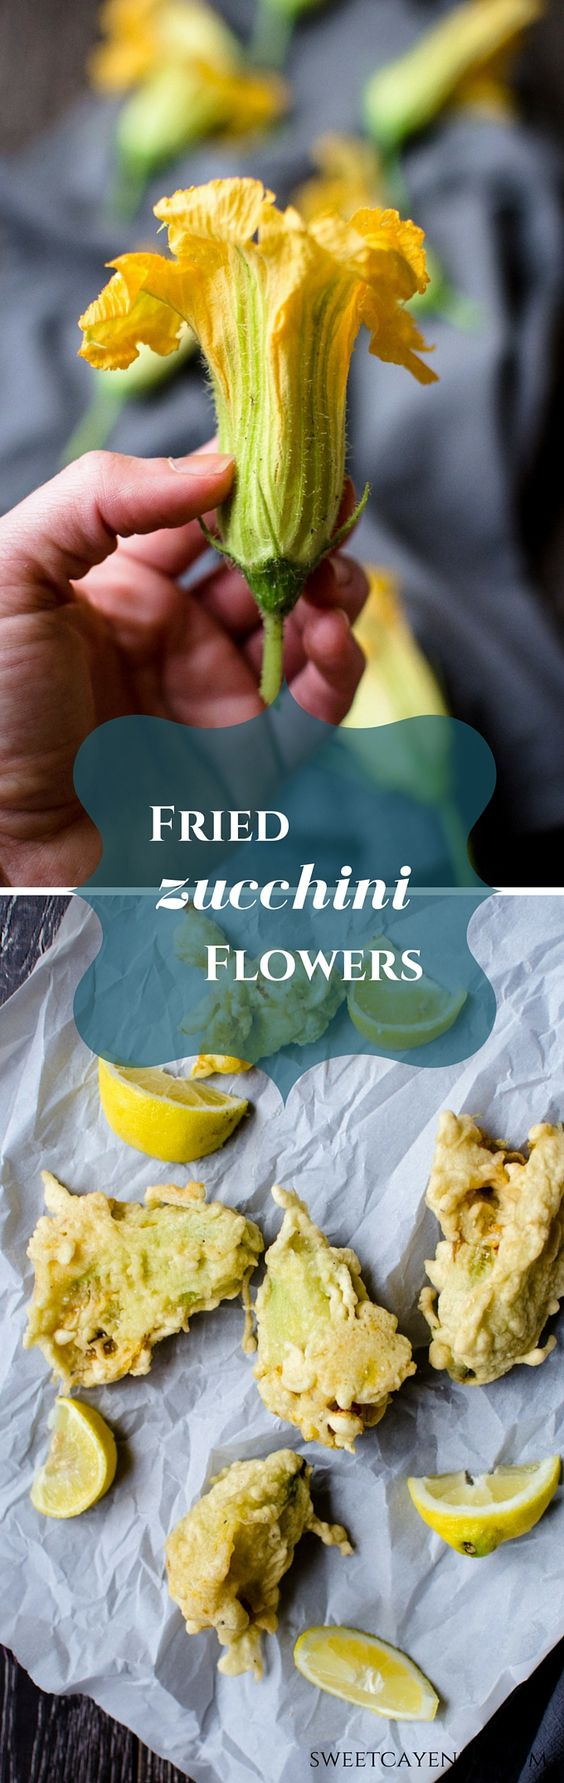 Zucchini Flowers Are Lightly Breaded And Fried In This Favorite Appetizer  Recipe From Italy Make It For Your Next Summer Party!